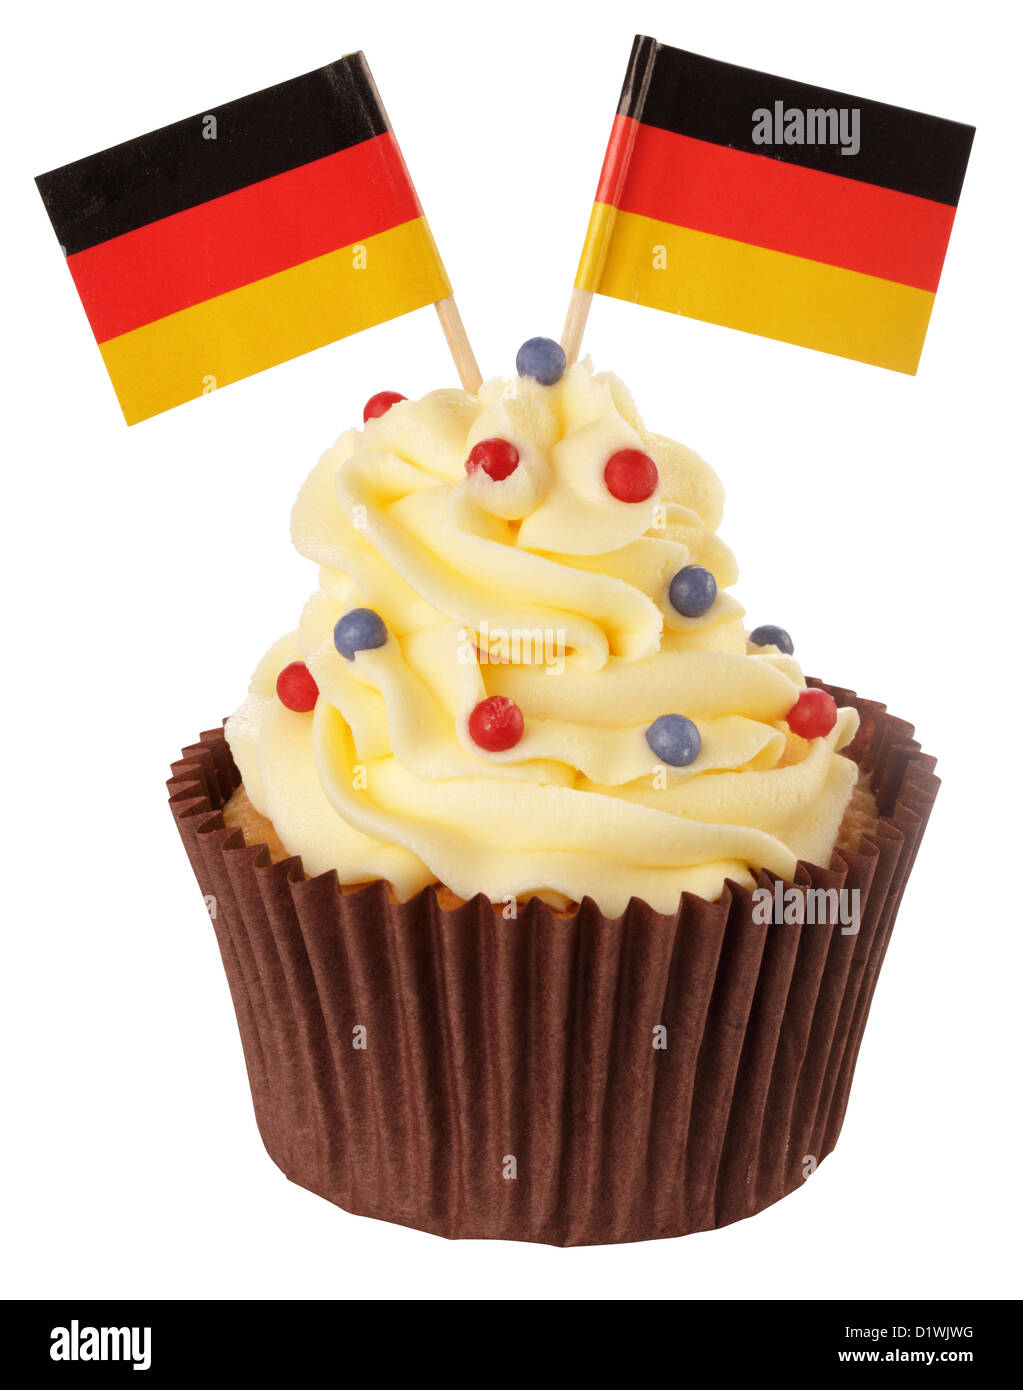 CUT OUT OF GERMAN FLAG CUPCAKE - Stock Image